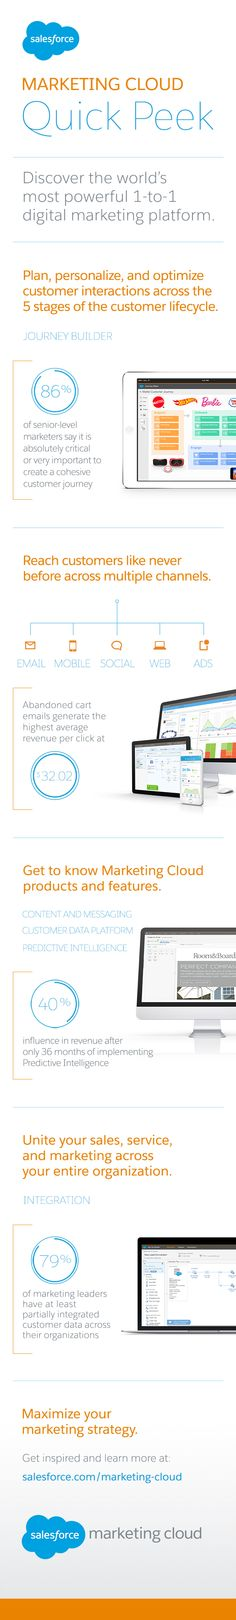 Get a quick peek at the world's most powerful 1-to-1 digital platform for marketing: the Salesforce Marketing Cloud.